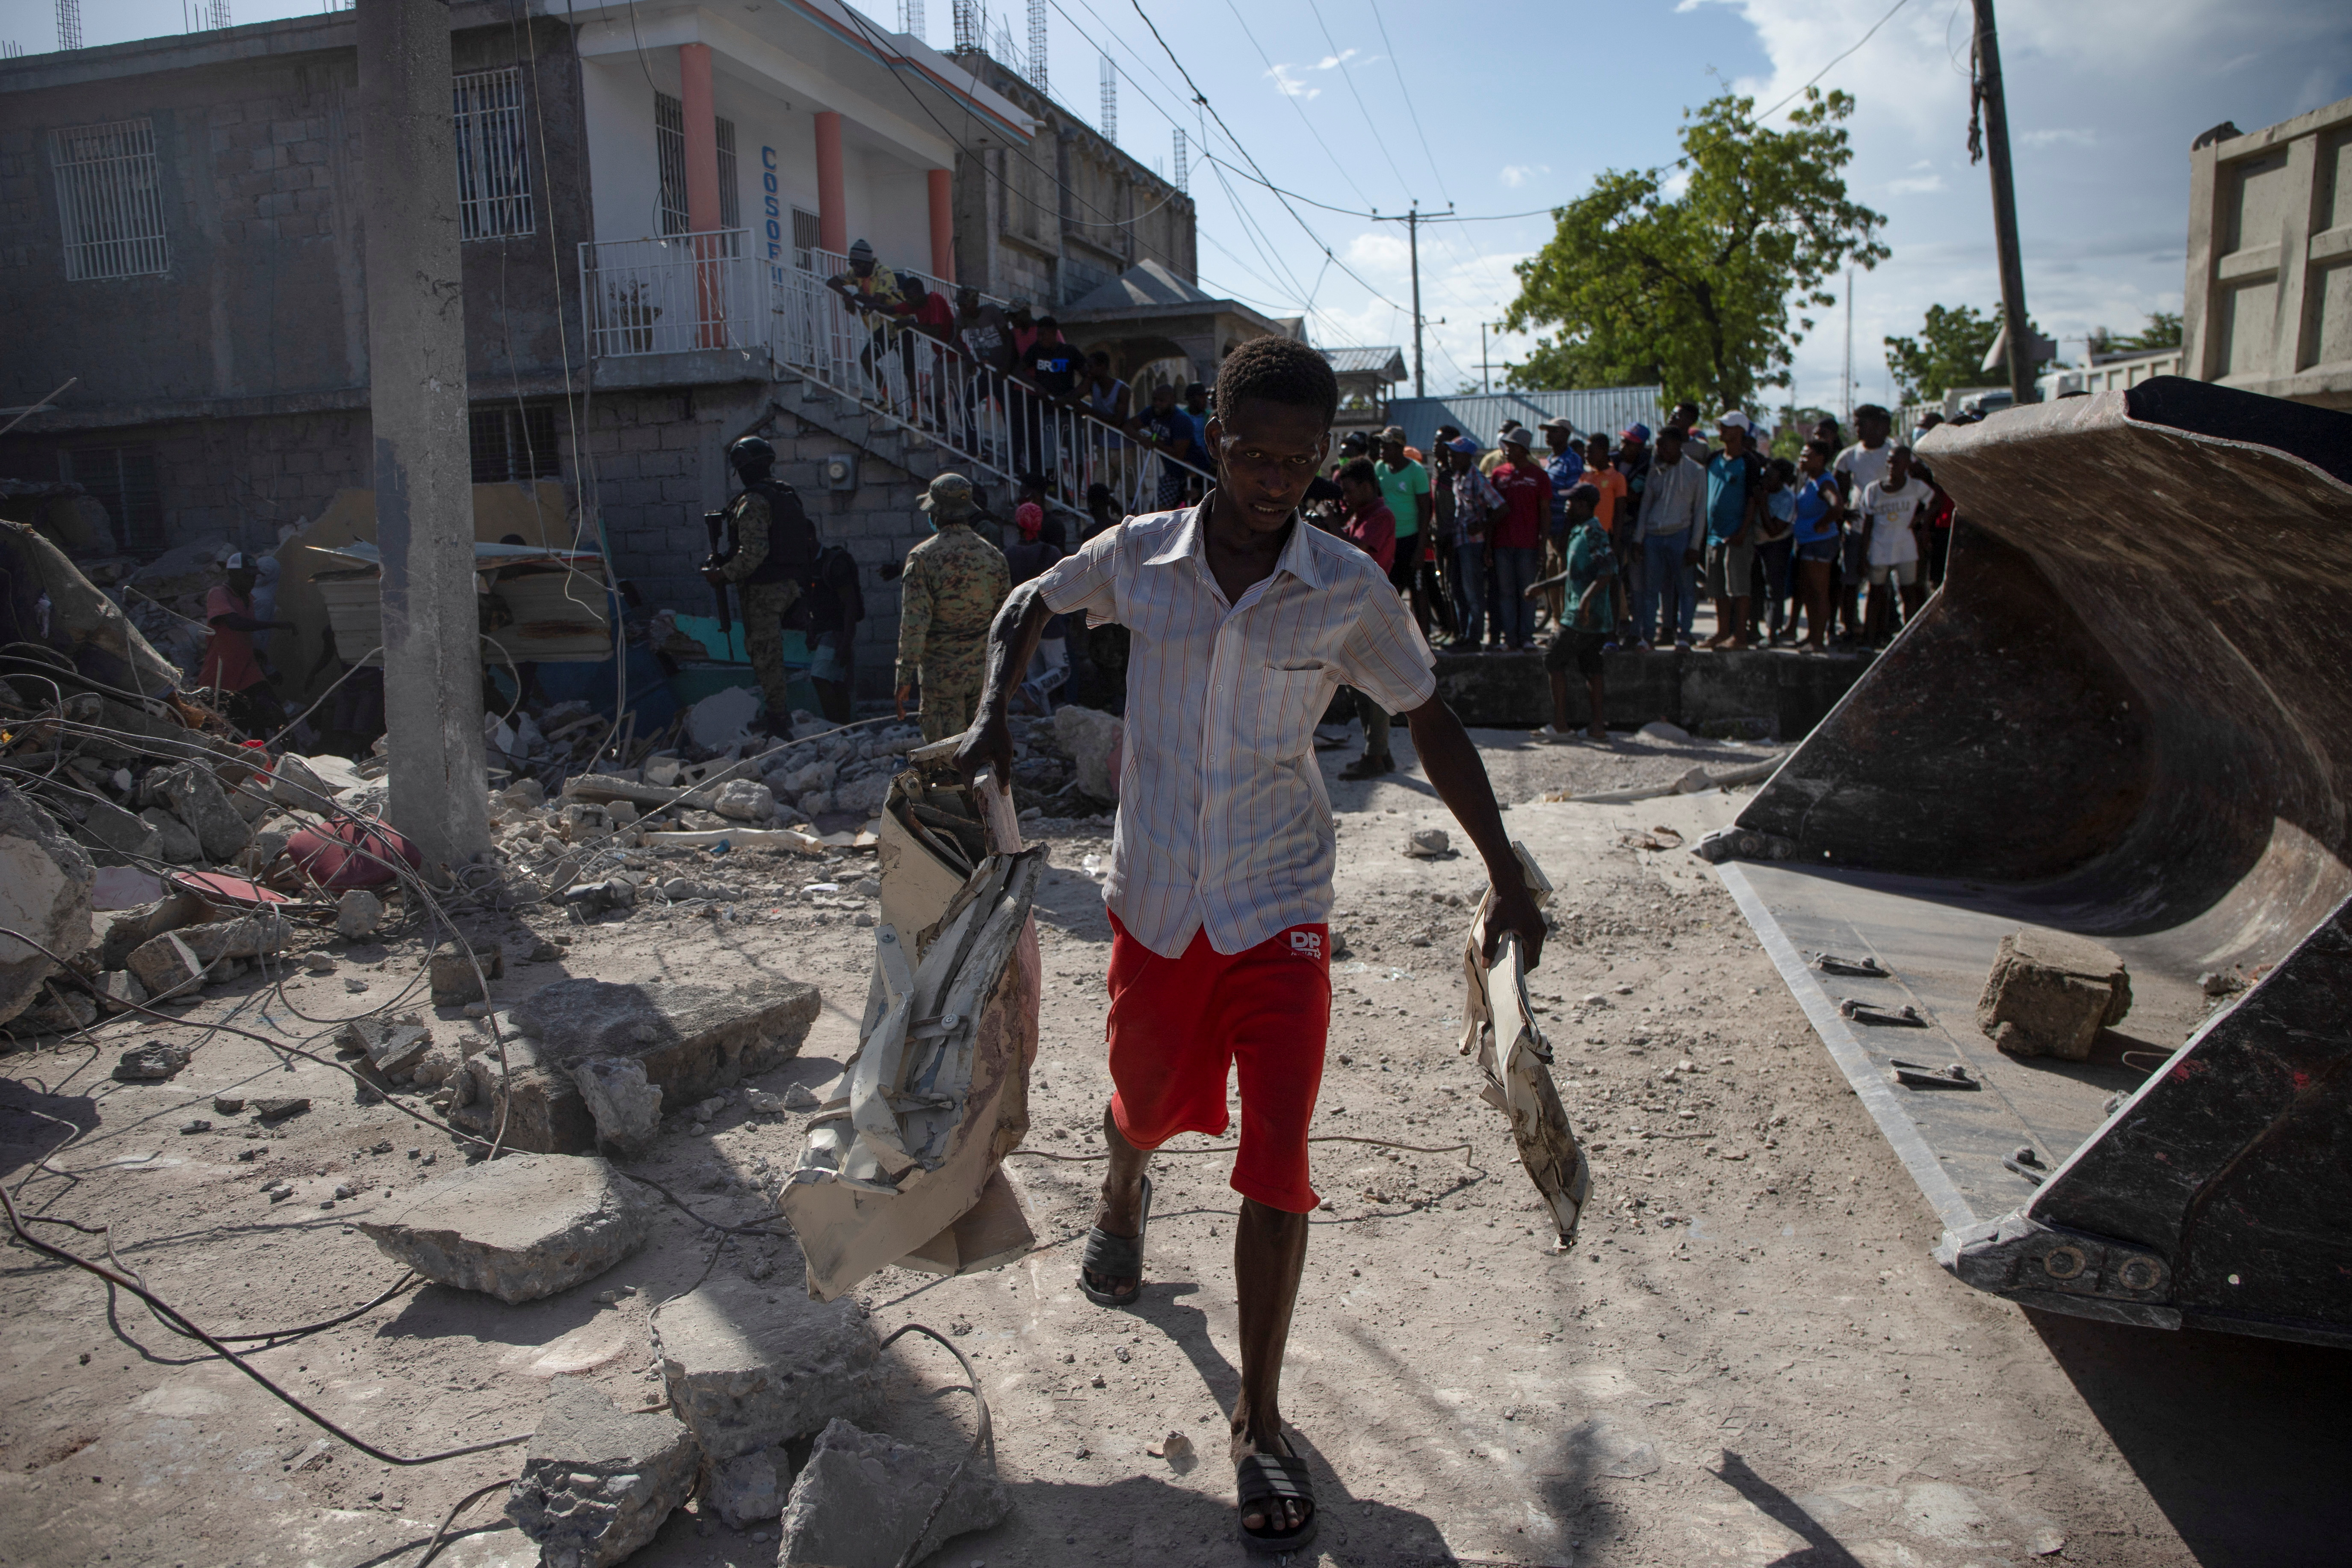 A man removes debris from a house after a 7.2 magnitude earthquake in Les Cayes, Haiti August 15, 2021.  REUTERS/Estailove St-Val